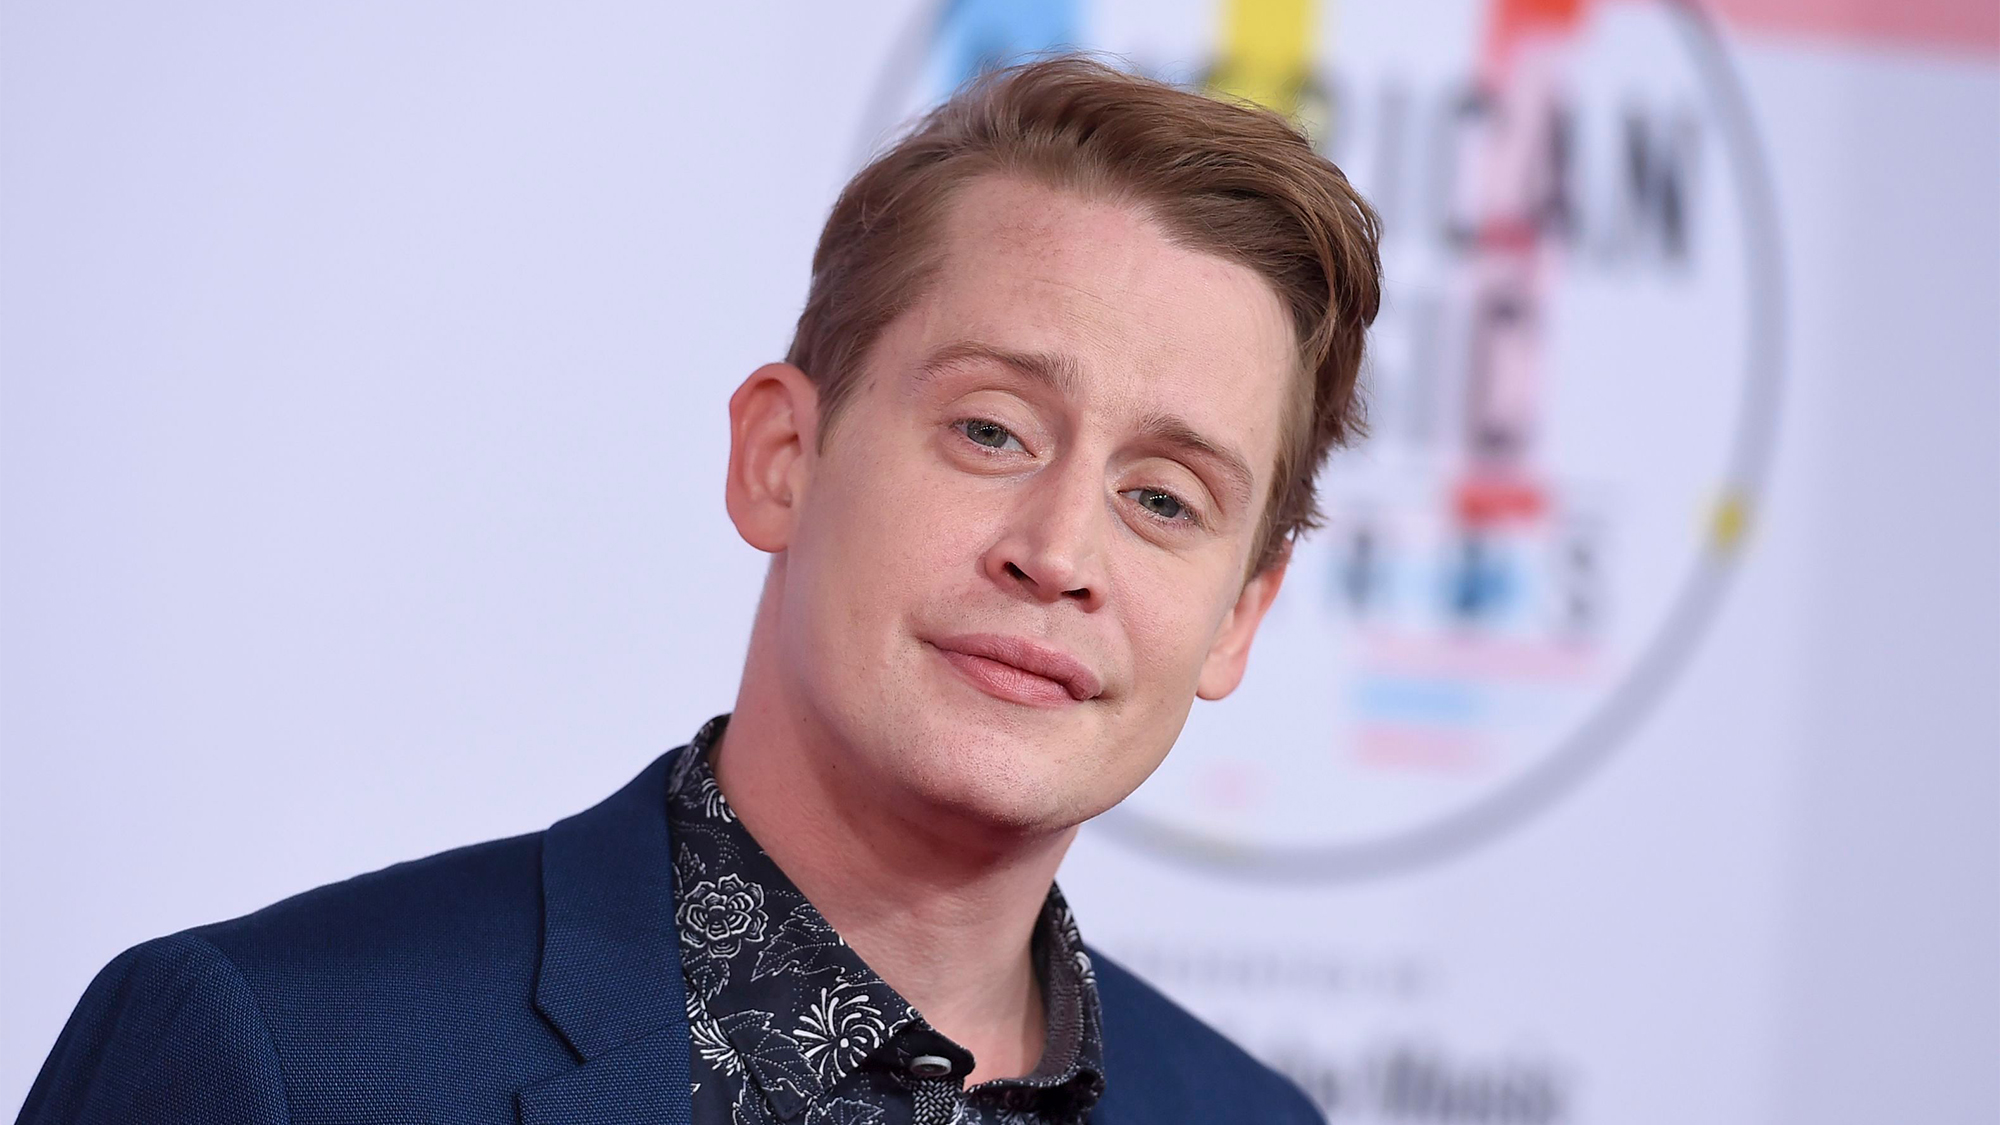 Macaulay Culkin on His Relationship With Michael Jackson - Variety